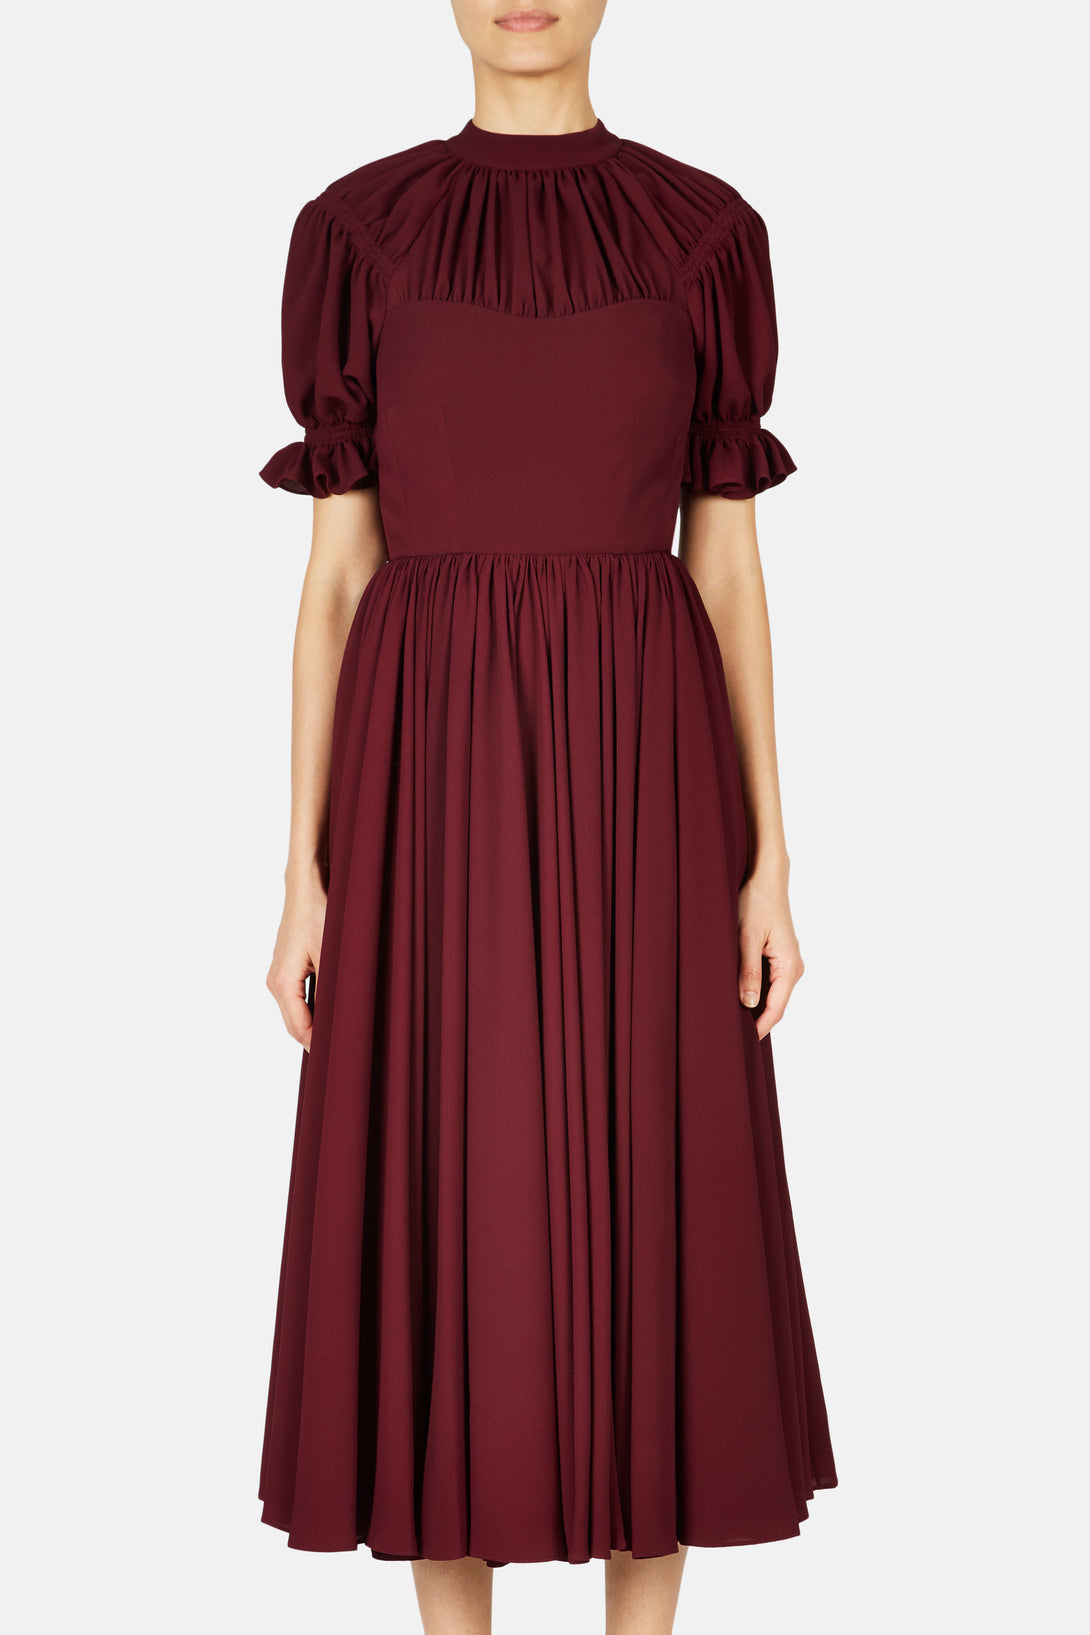 Philly Gathered Neck Dress - Aubergine